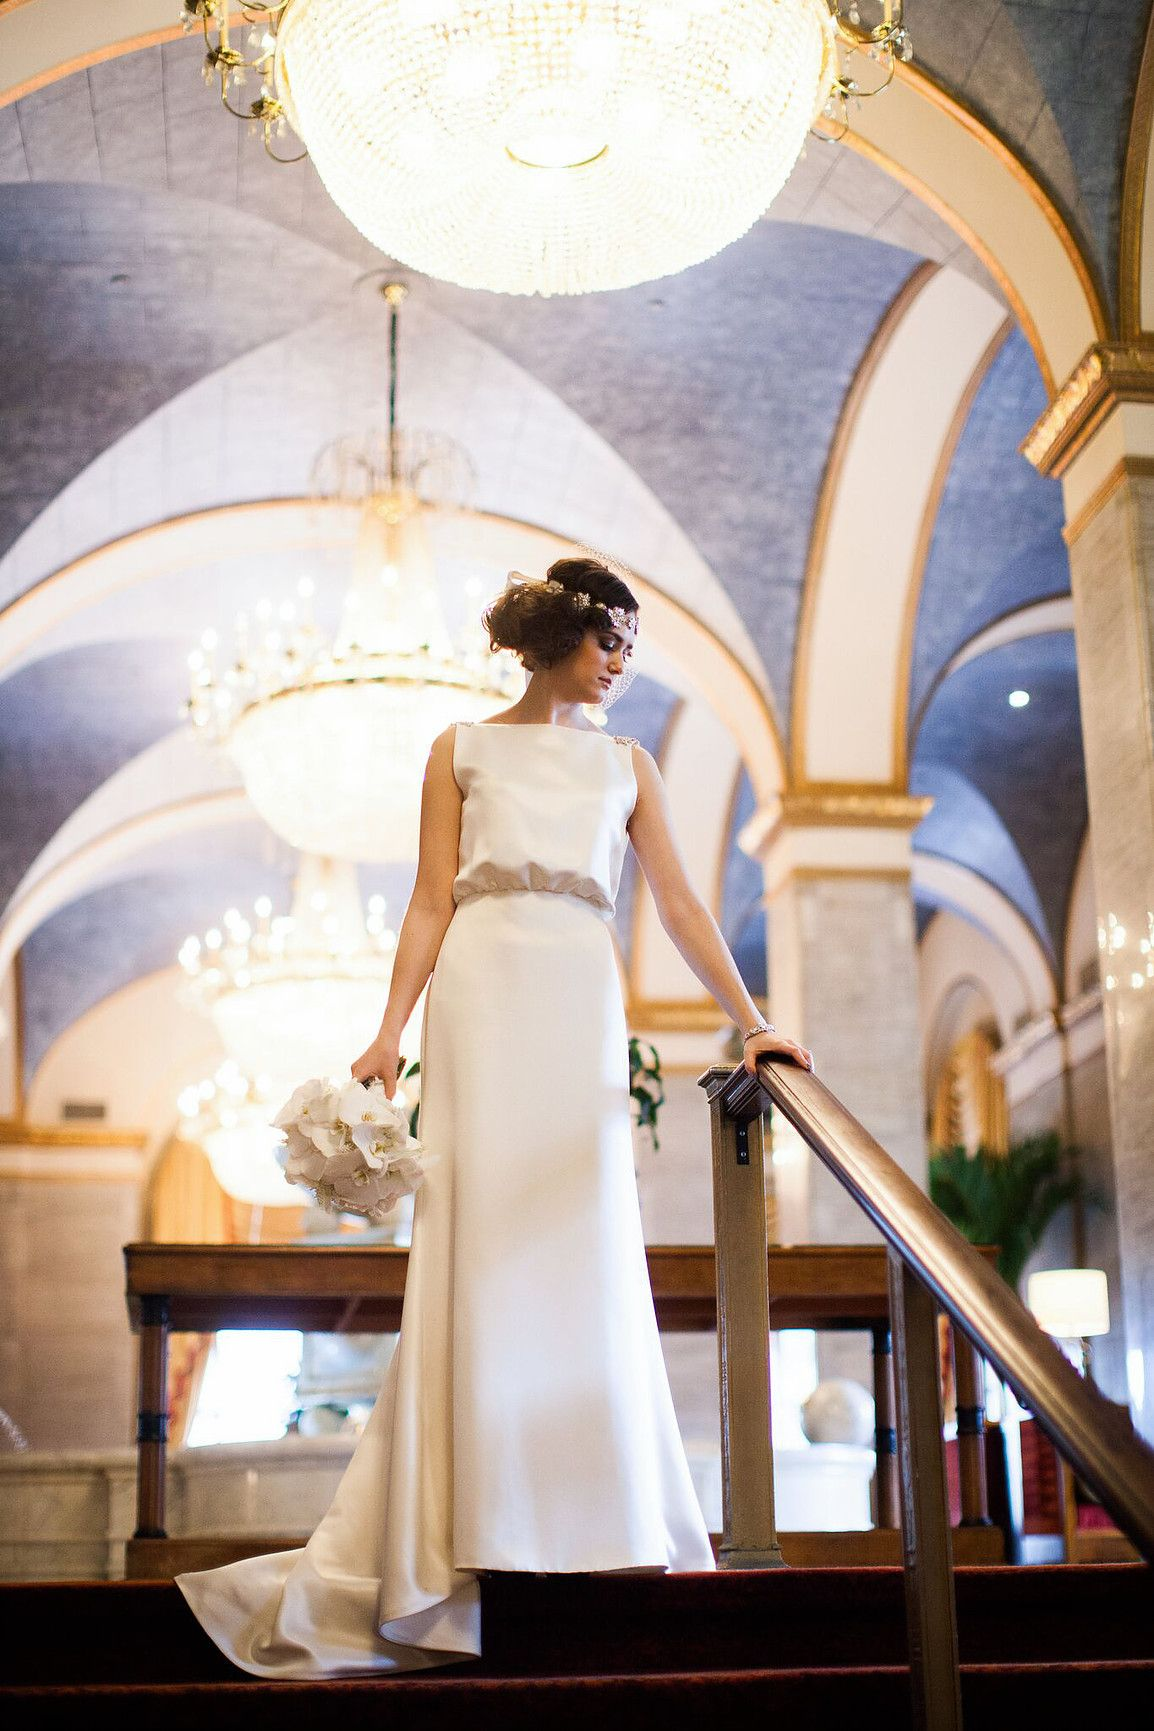 Caroline DeVillo's wedding gown Ginger is perfect for an Old Hollywood wedding look, available at Something White